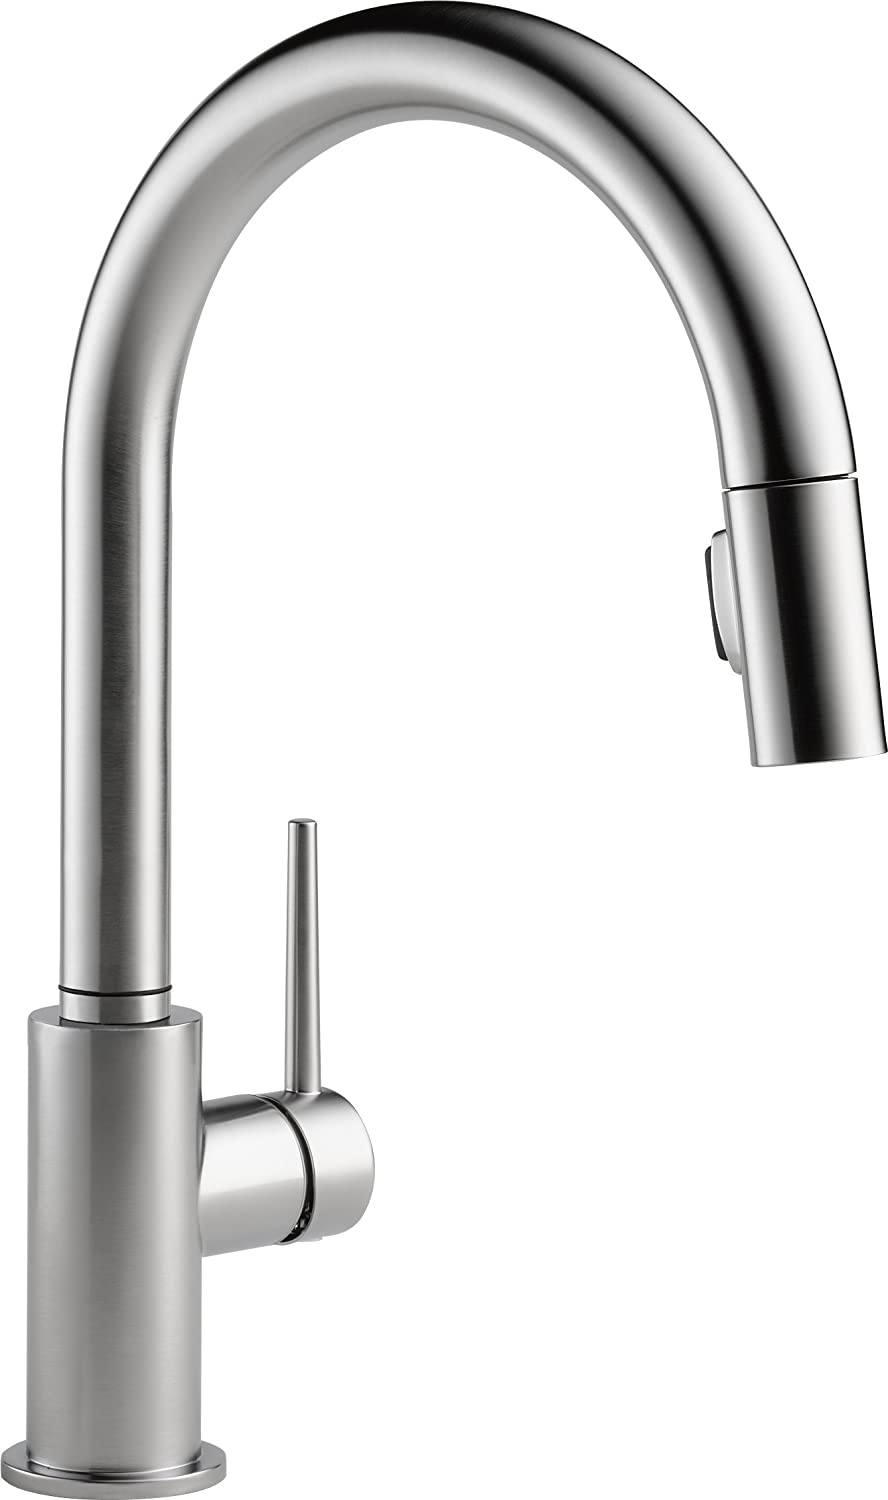 Top 10 Best Kitchen Faucets under $100, $150 to $200 Reviews in 2021 8